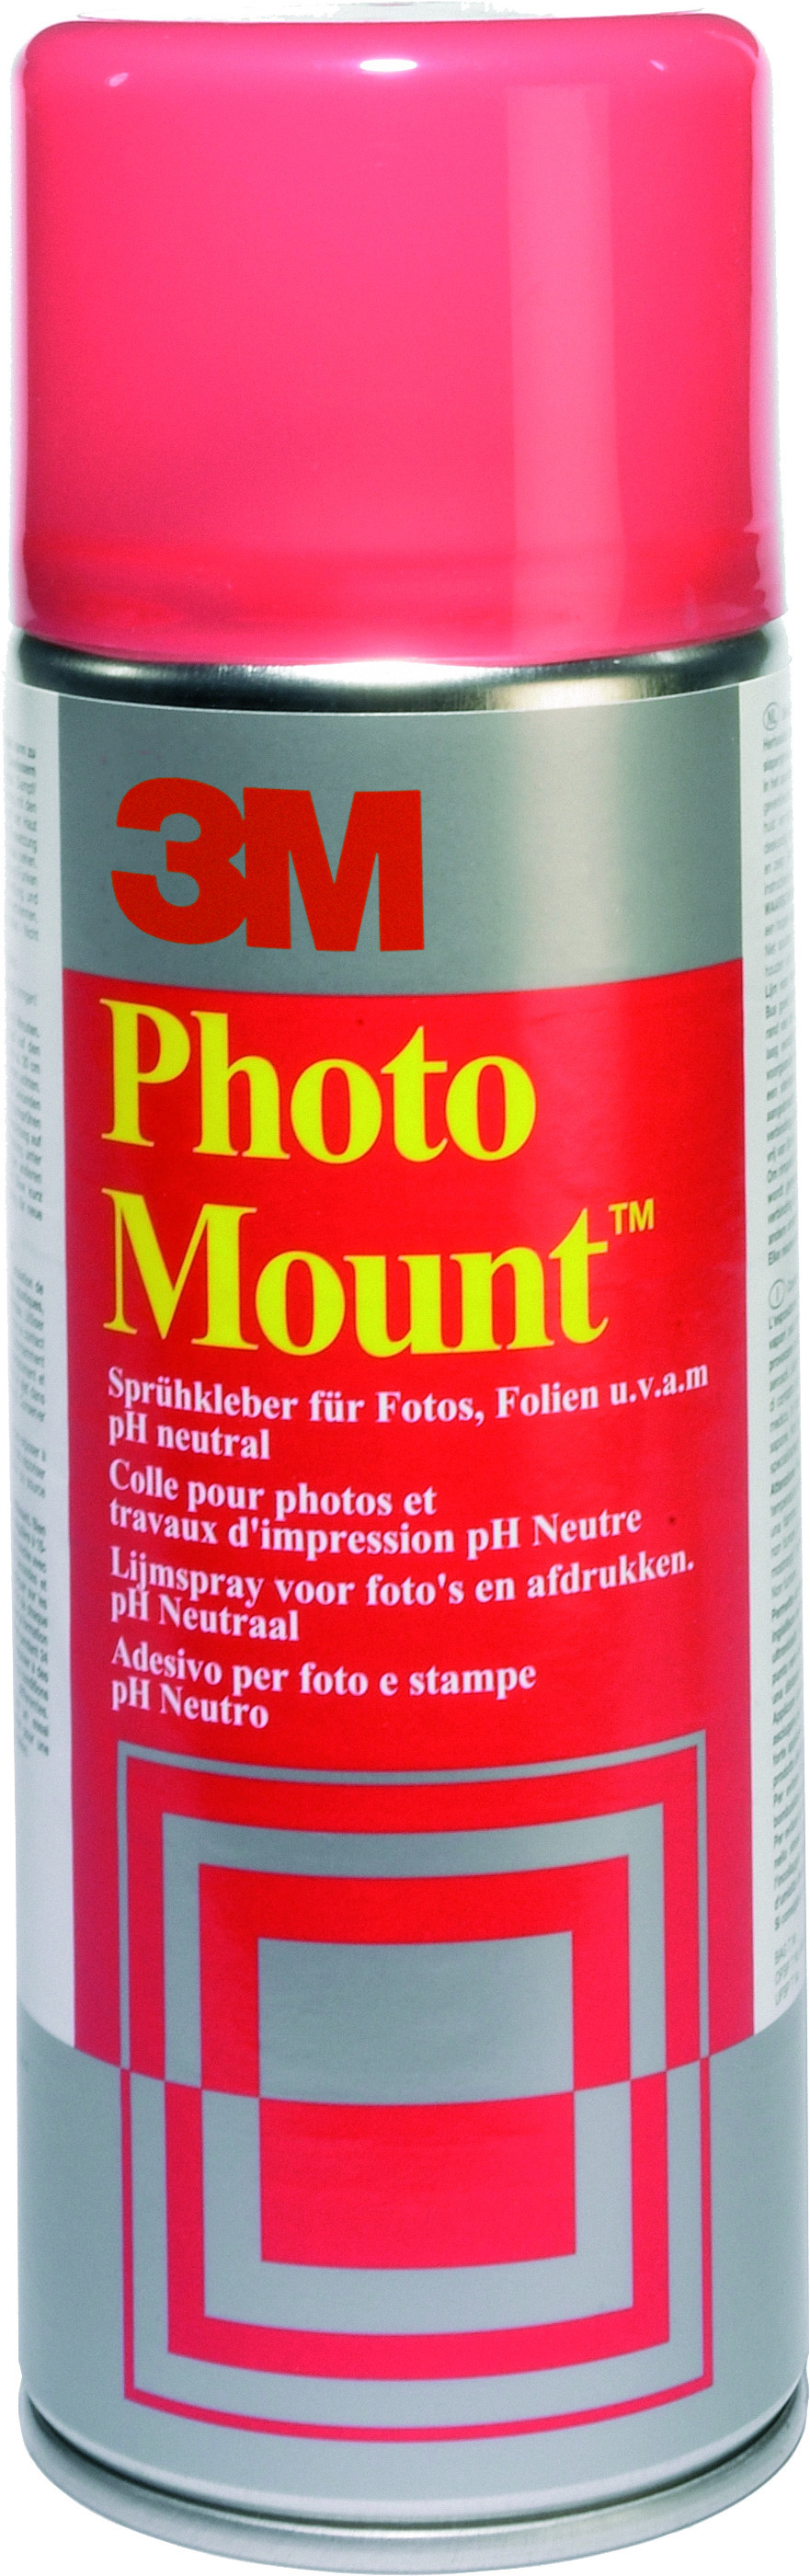 GP: 44,95 EUR/Liter 3M Sprühkleber Photo Mount 400 ml. - starker Haftkraft